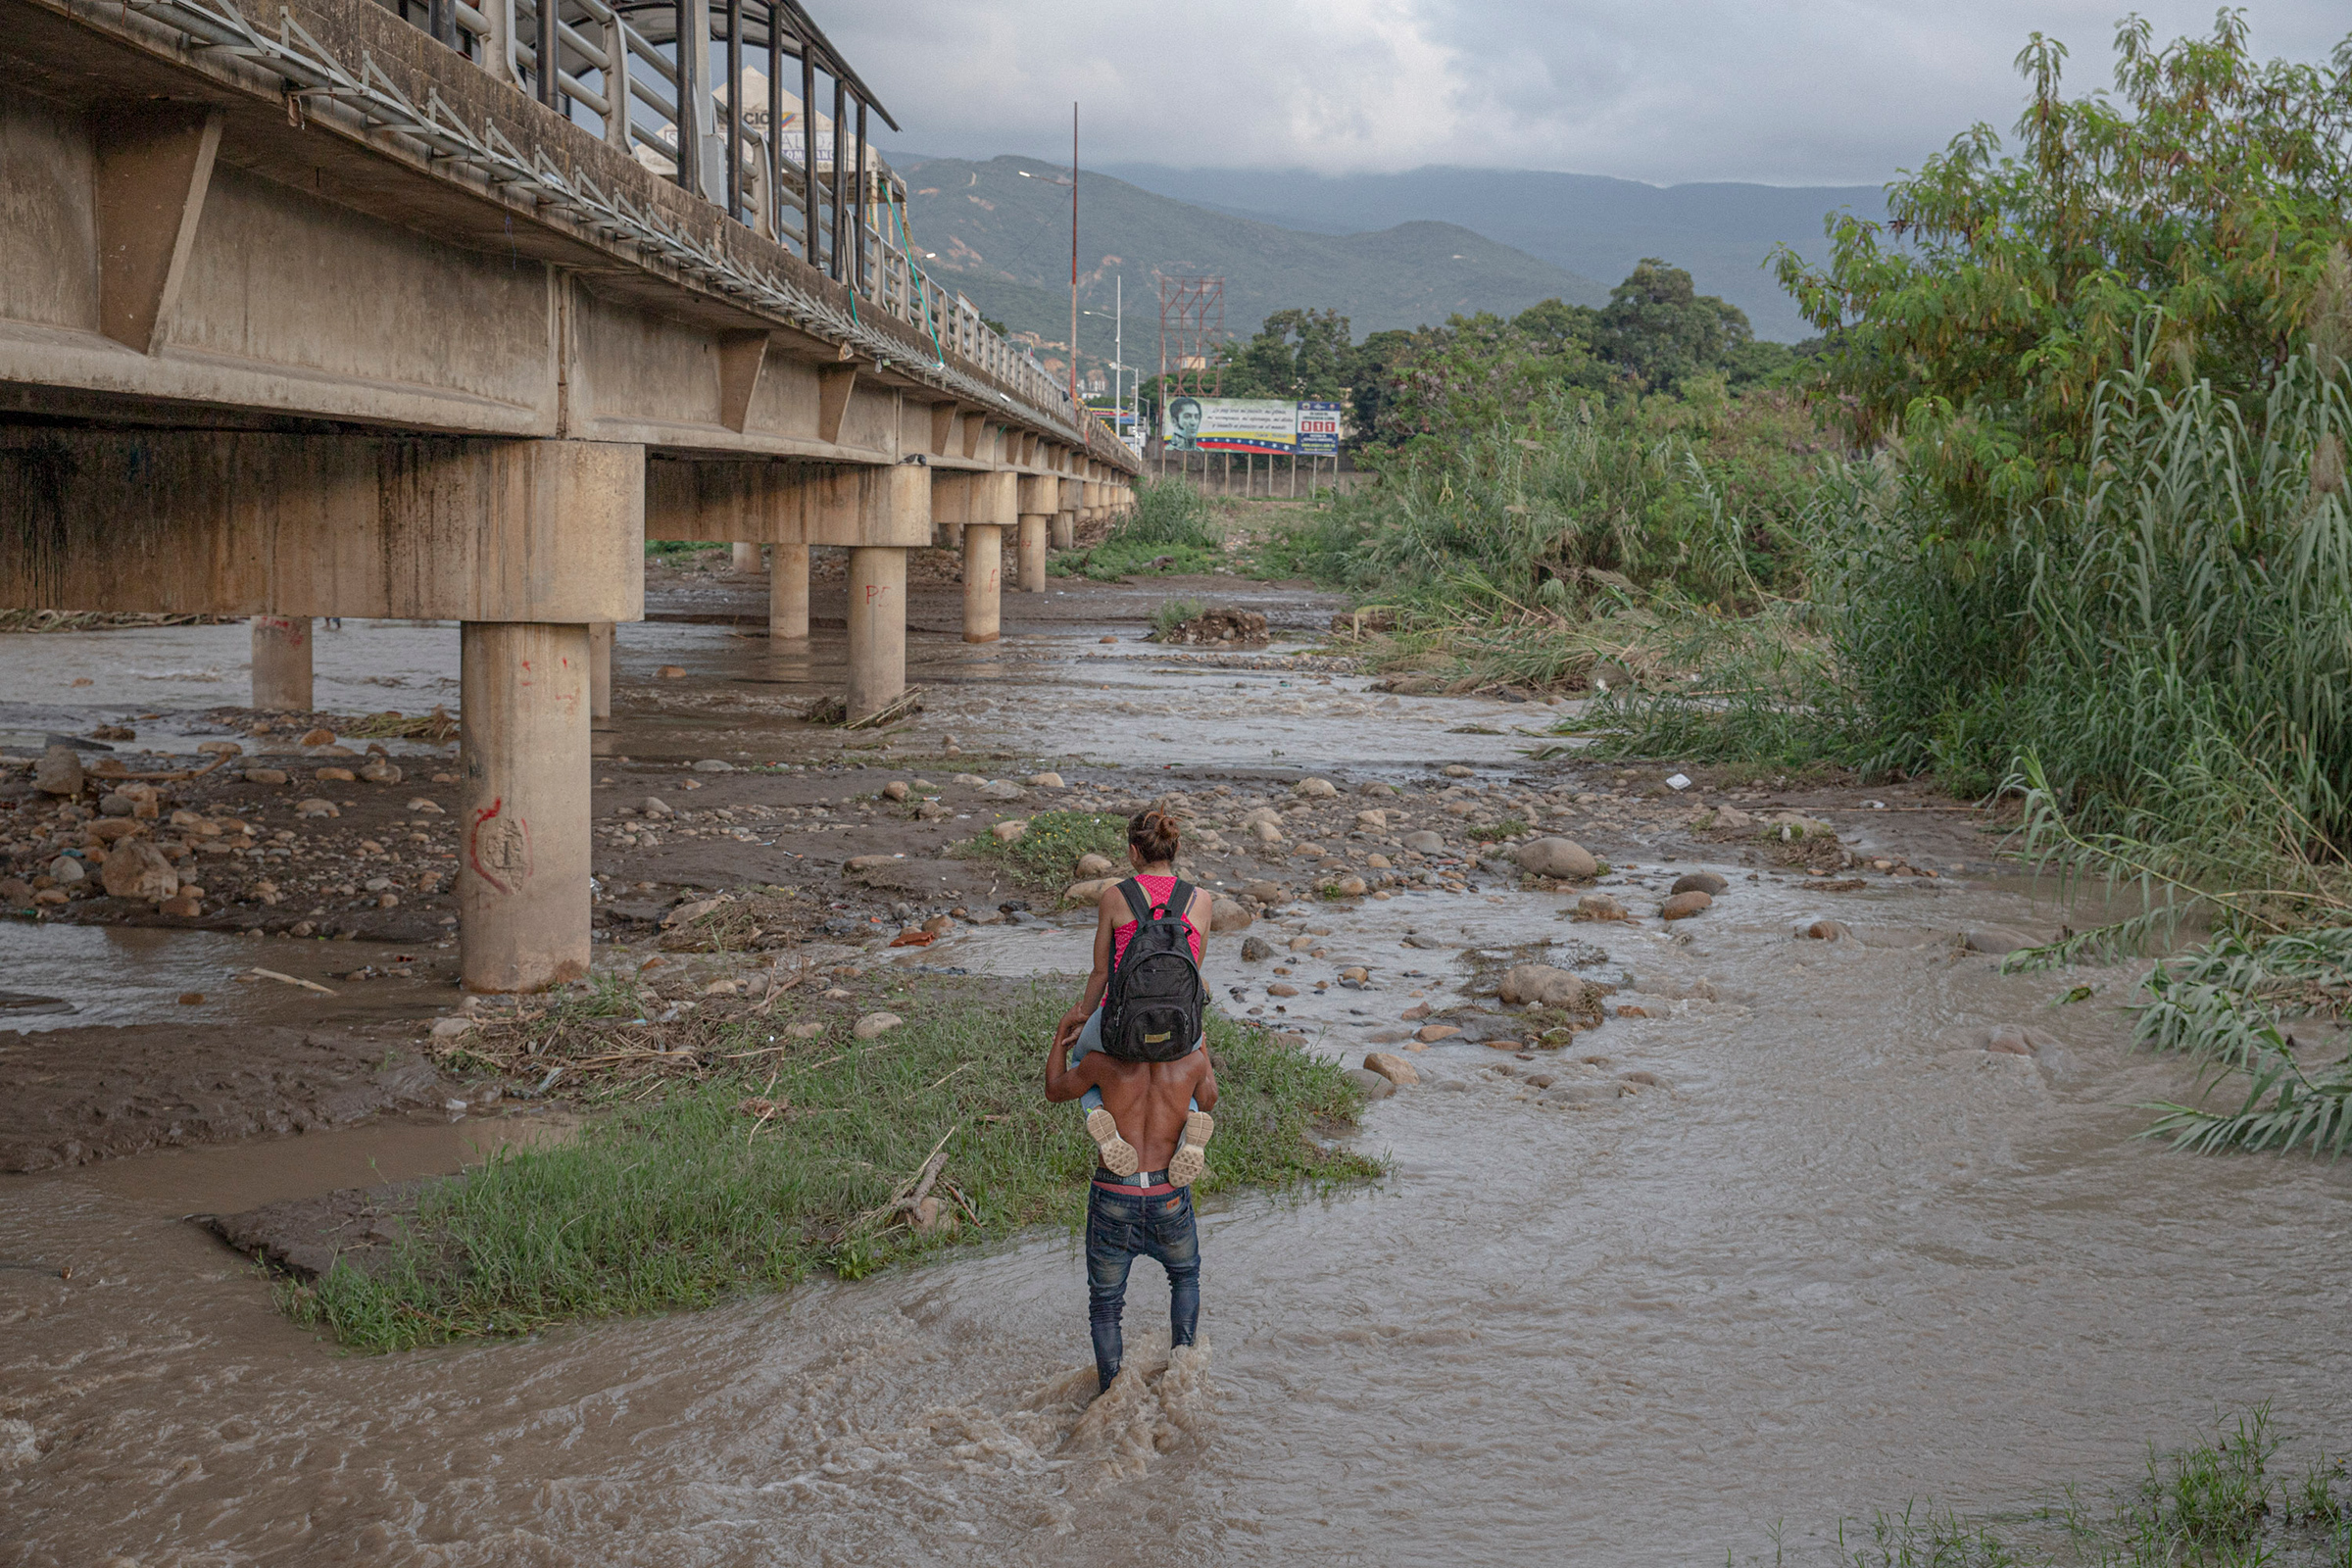 A man carries a woman across the Táchira River, which marks the border between Venezuela and Colombia, in November.